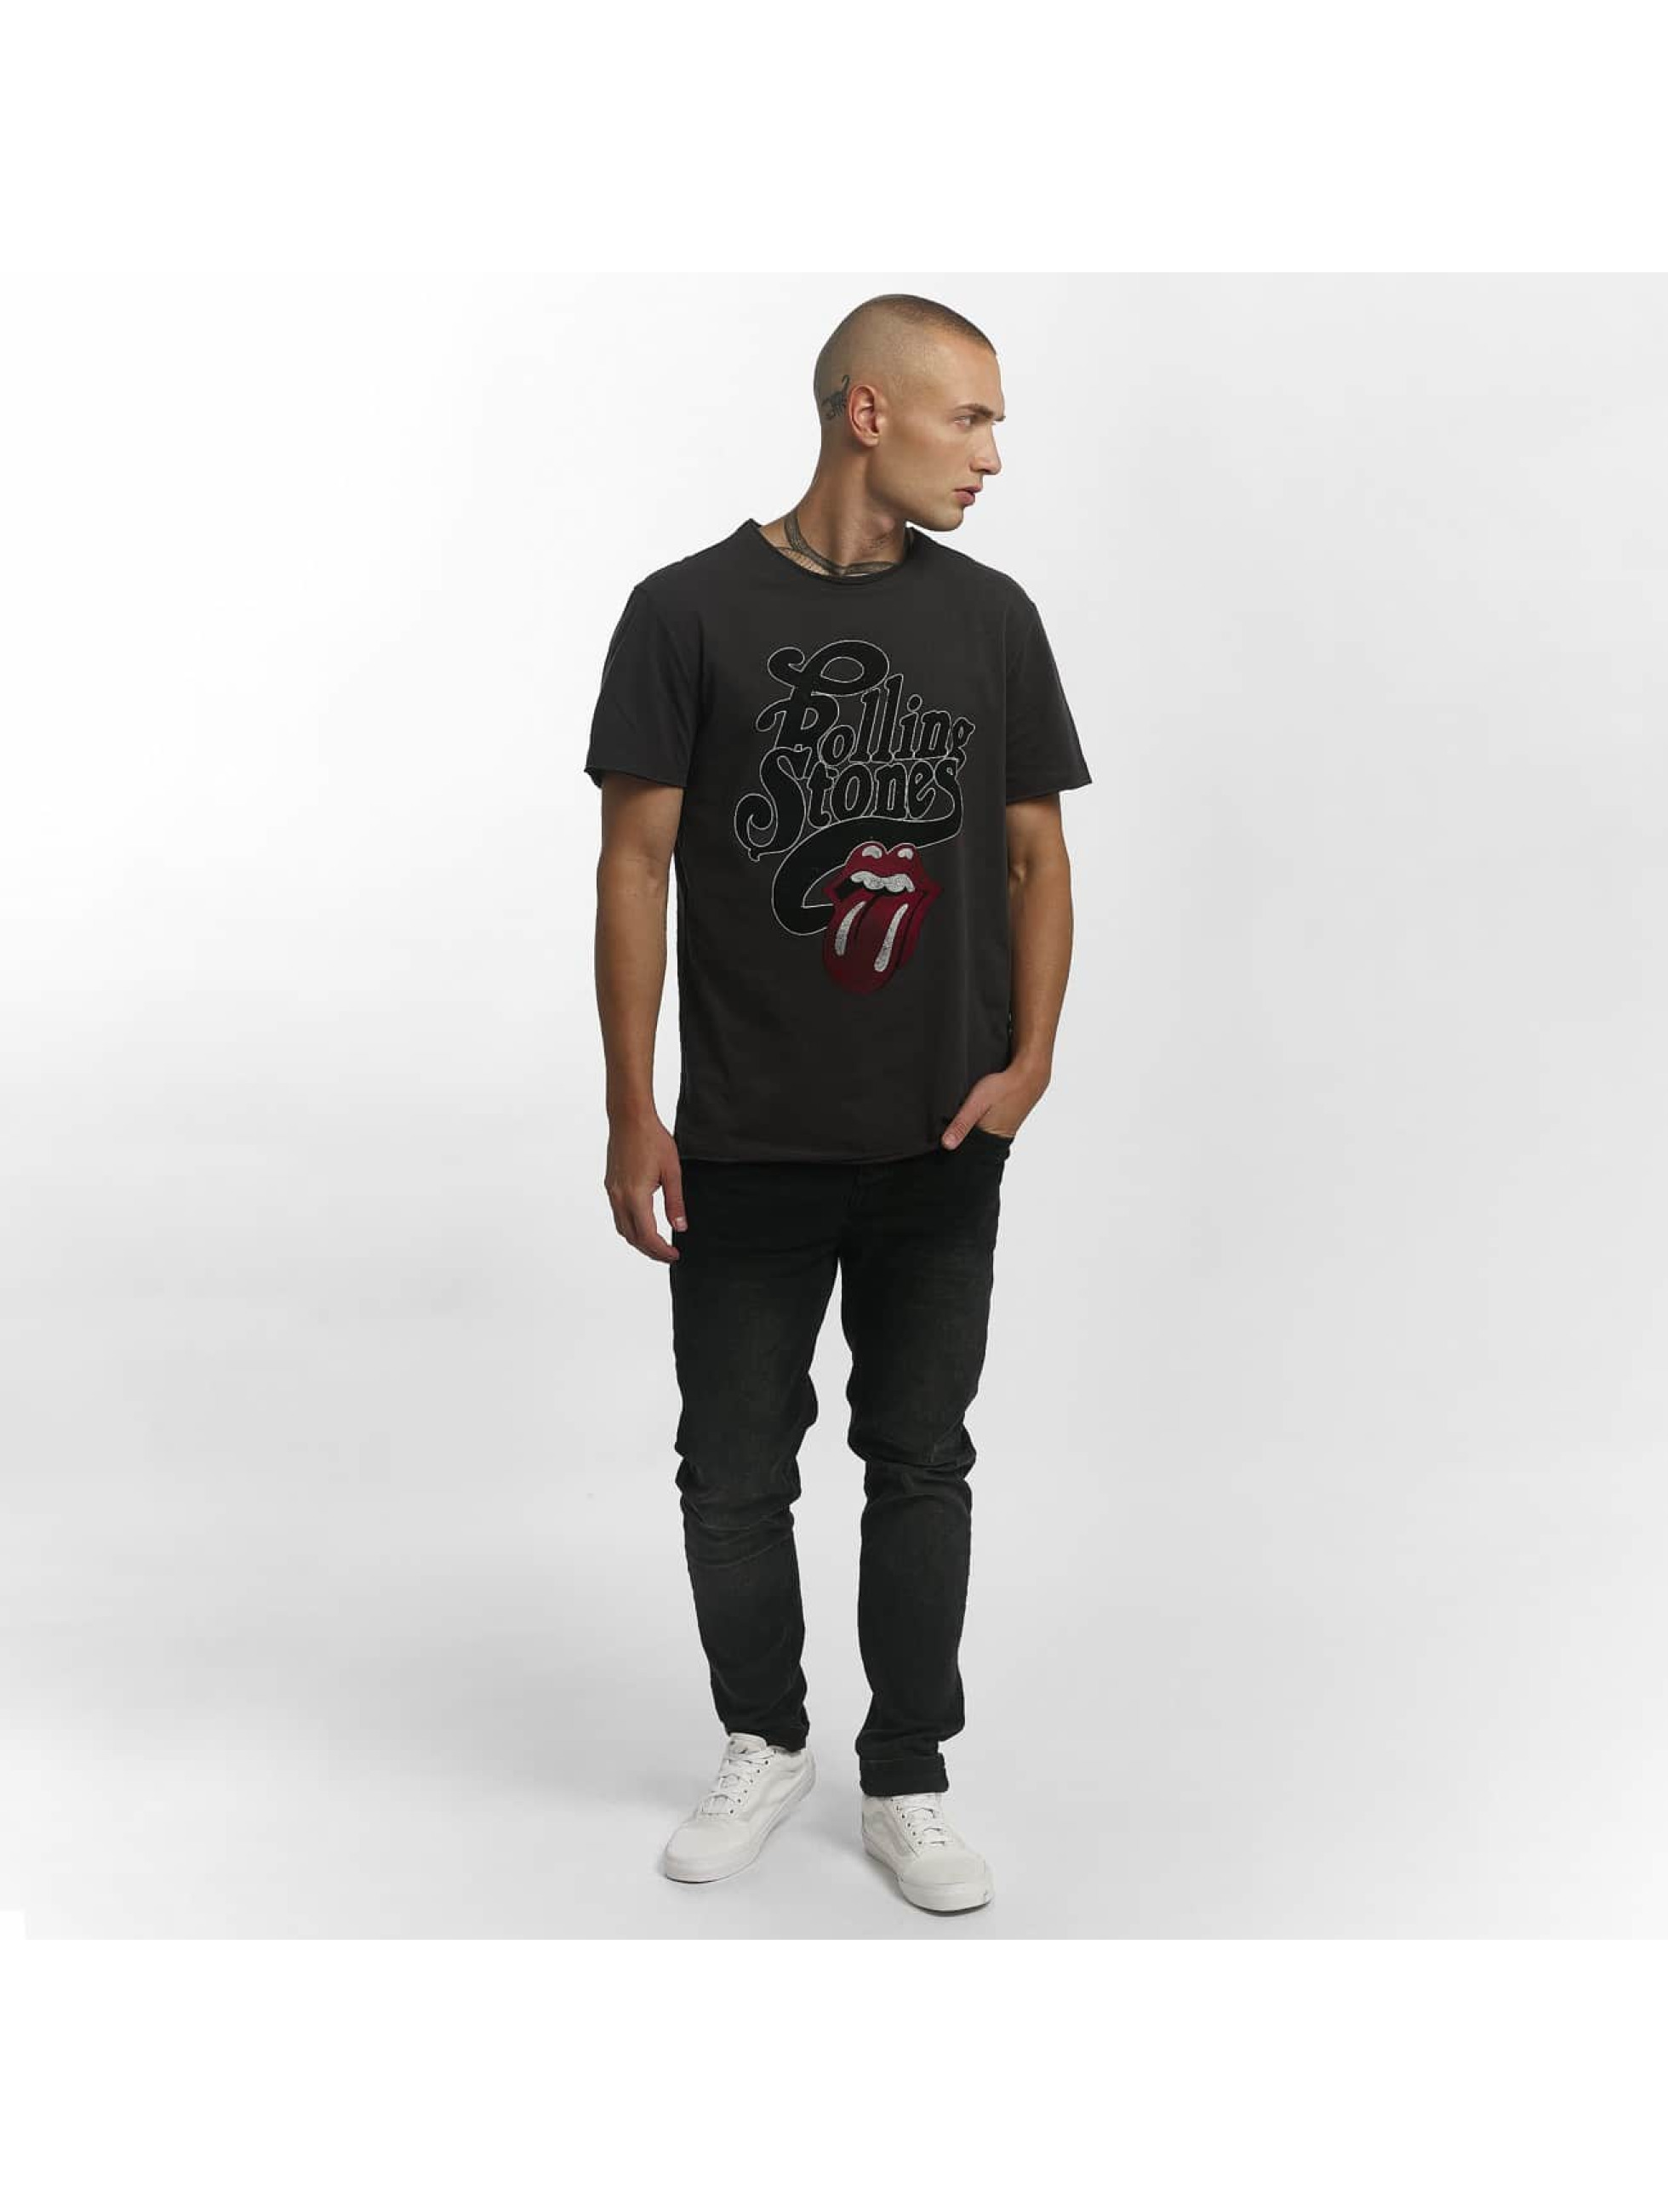 Amplified T-Shirt The Rolling Stones Licked gris